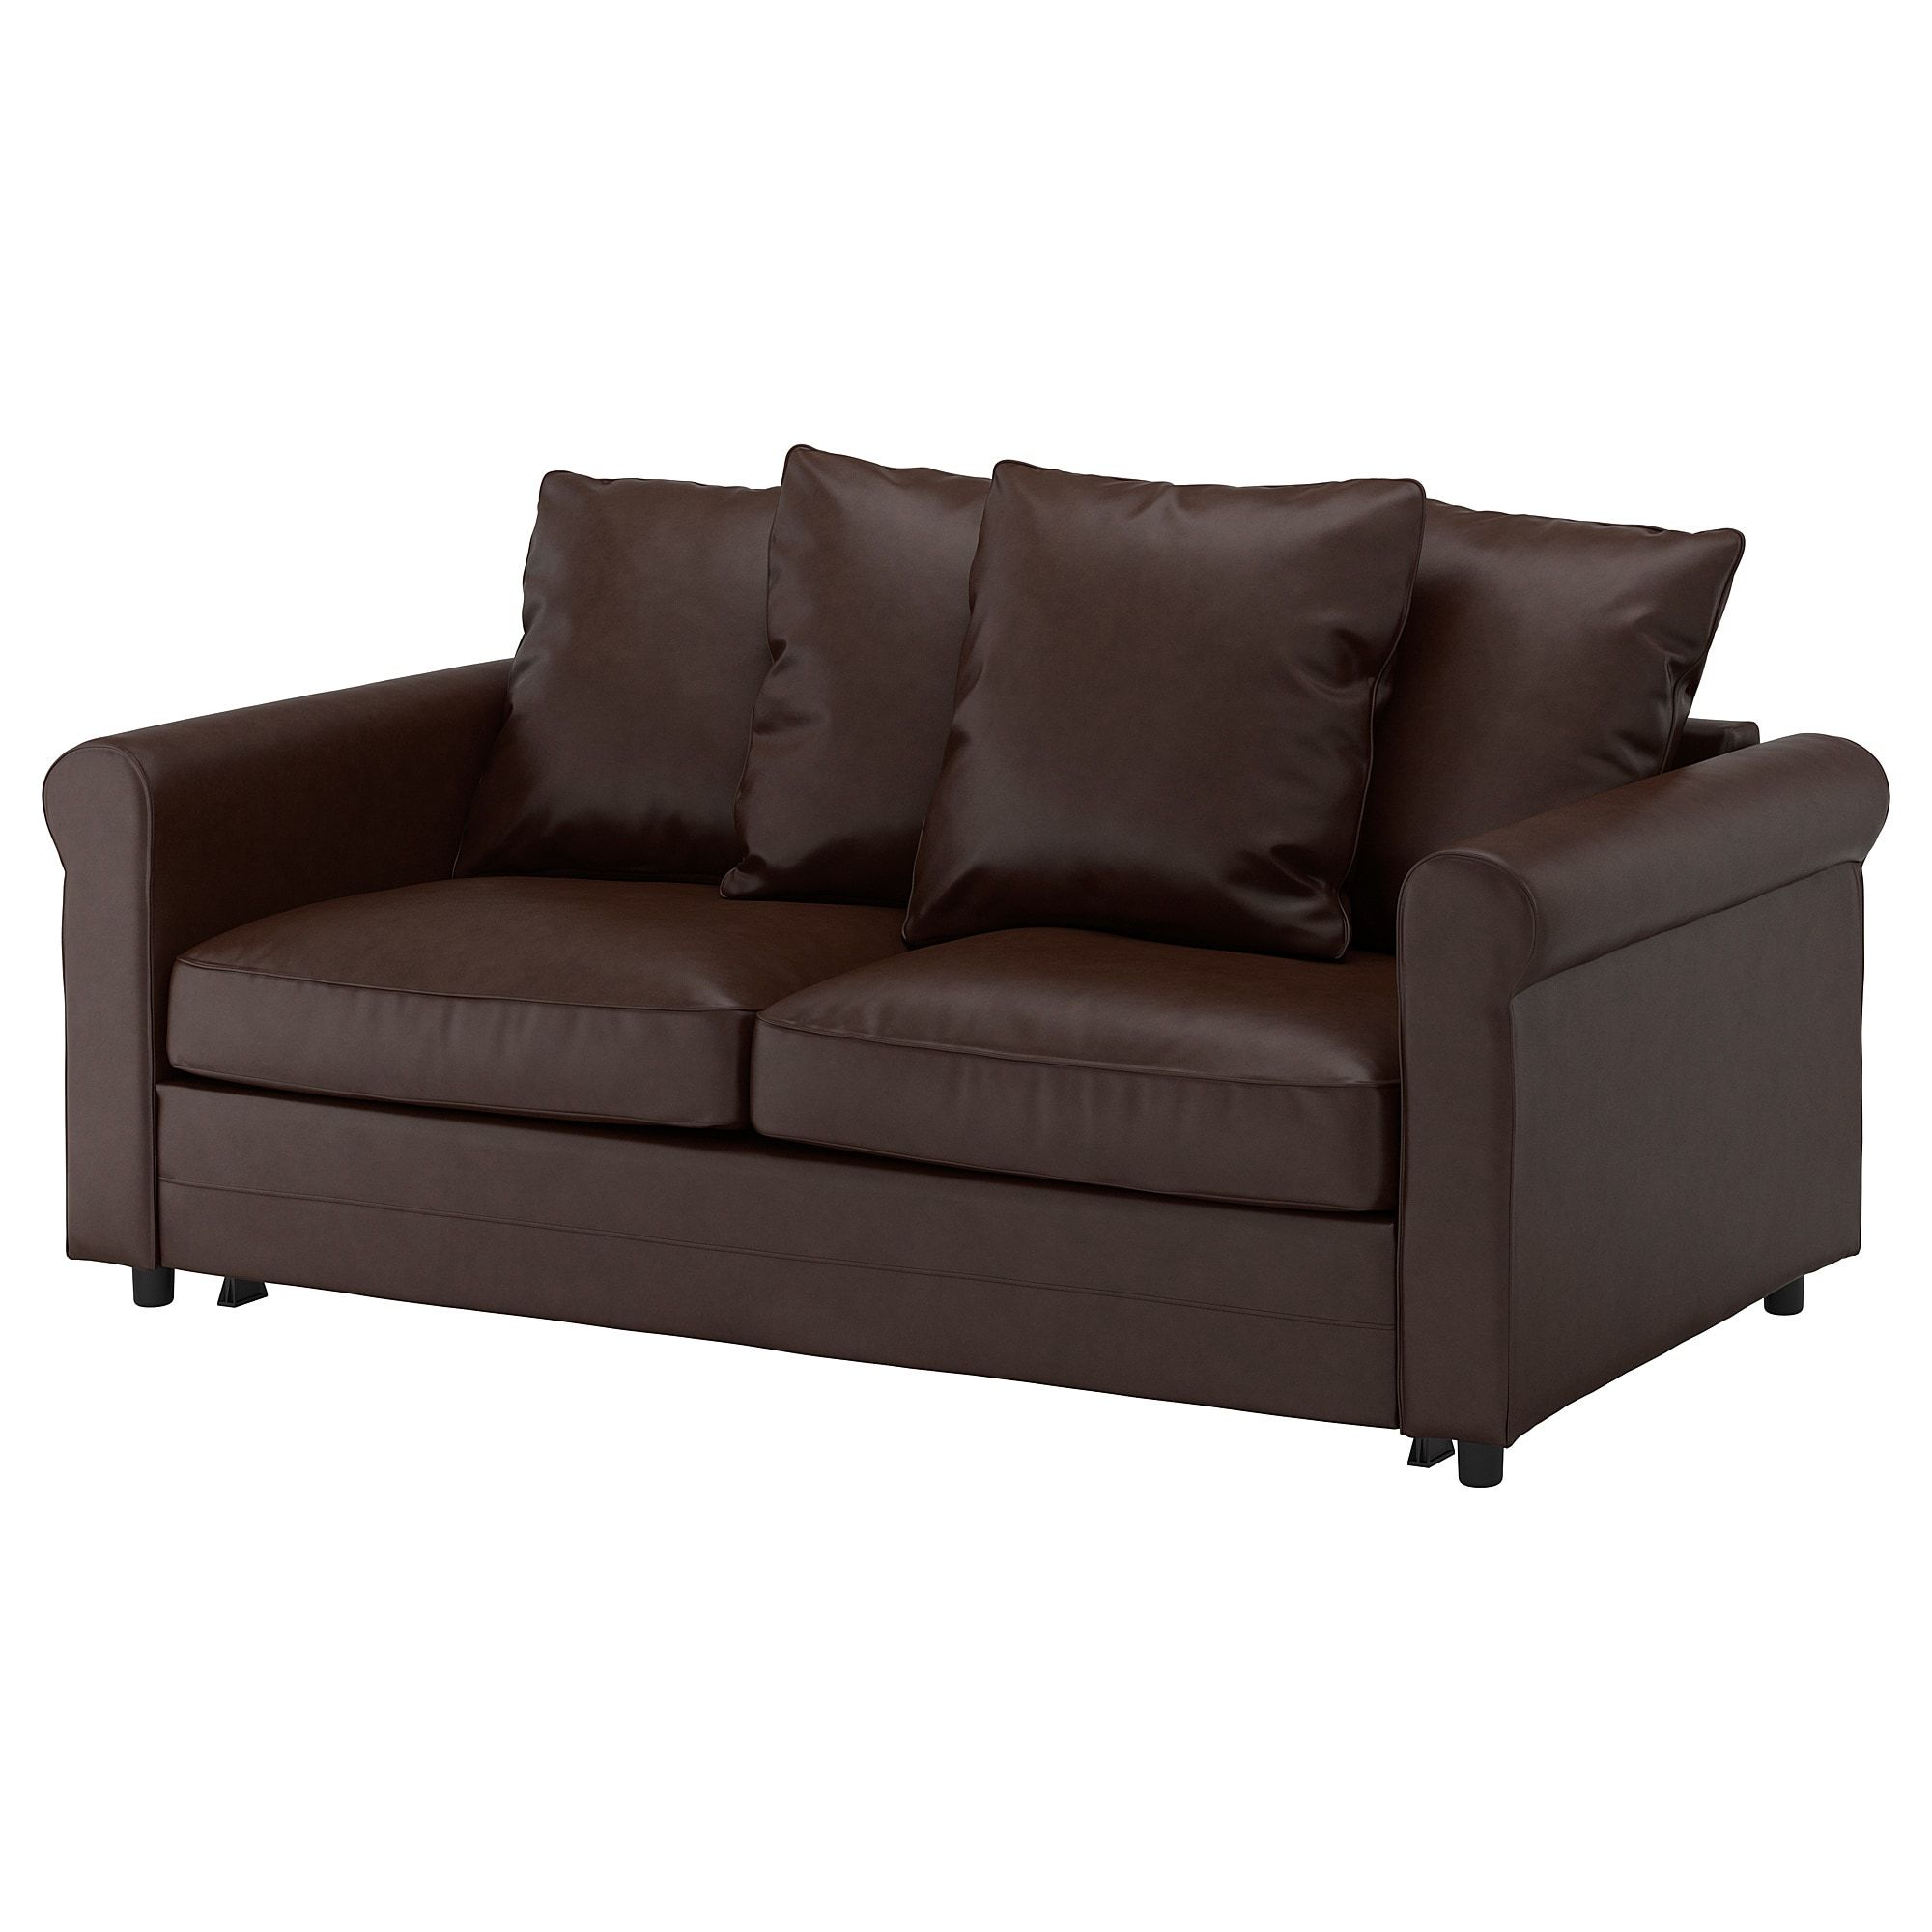 Bettsofa Mit Lattenrost Bettsofa Mit Lattenrost With Bettsofa Mit - Klappbett Sofa